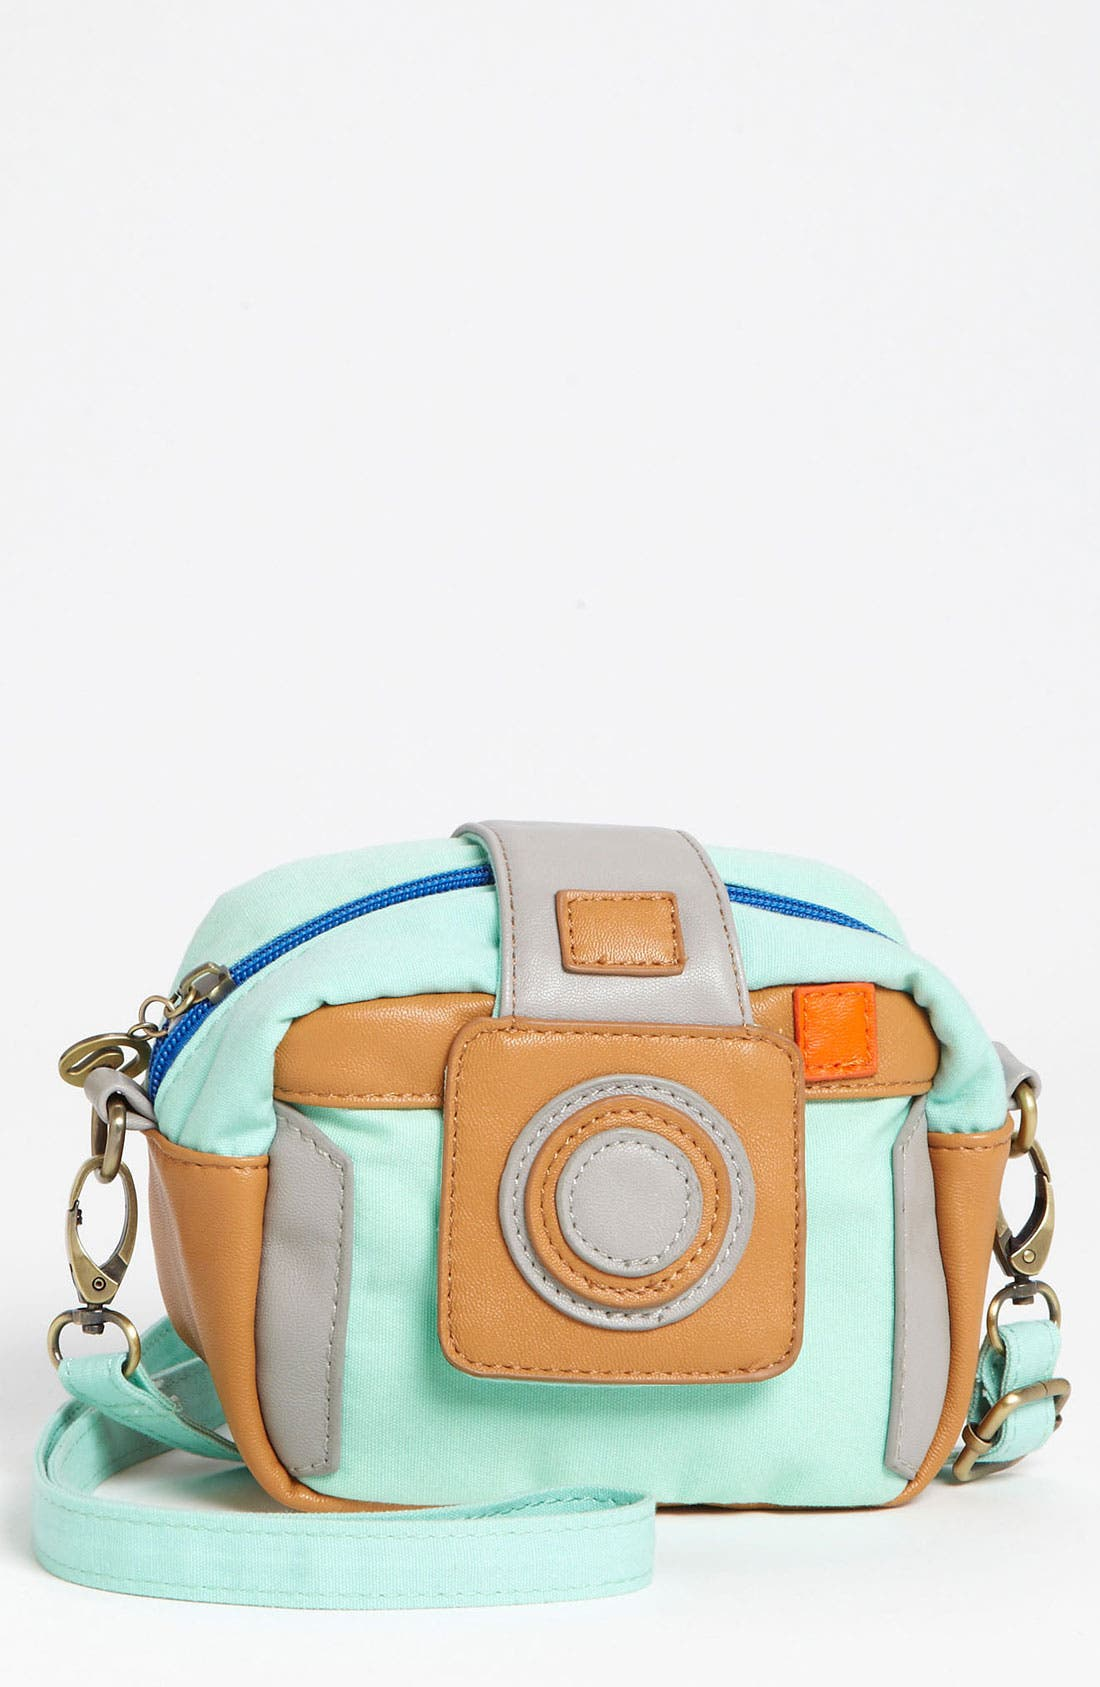 Alternate Image 1 Selected - Nila Anthony 'Camera' Crossbody Bag